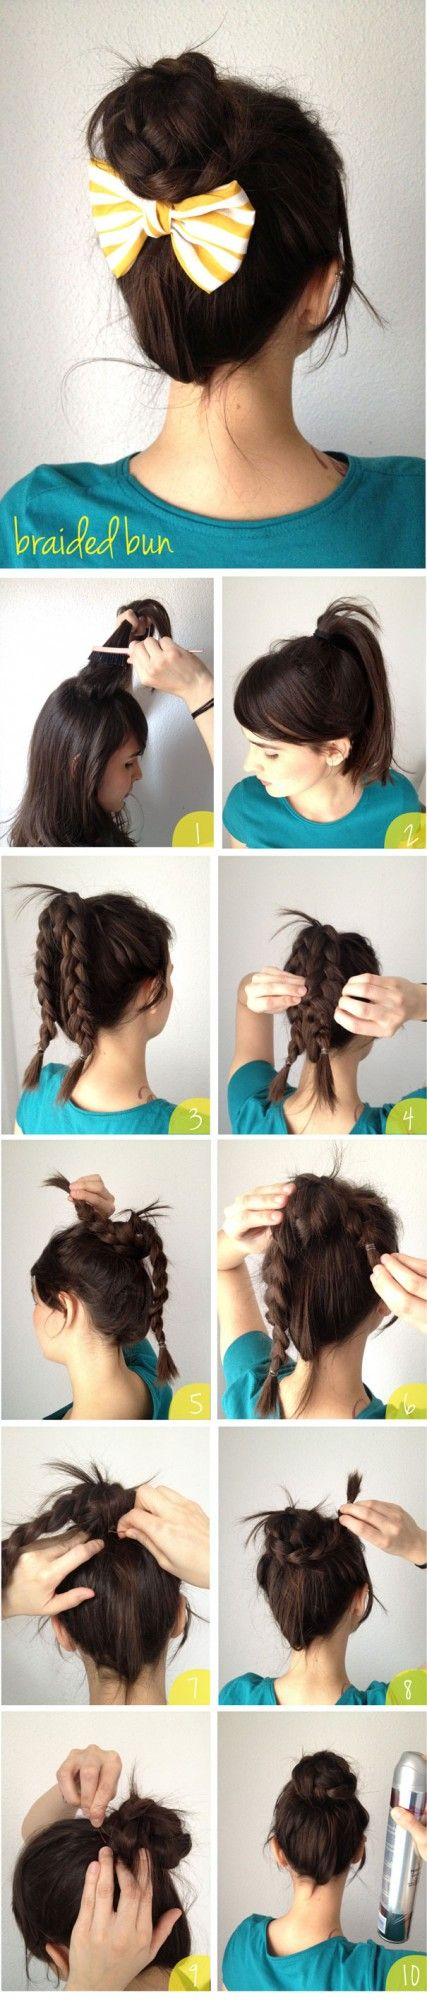 cute hairstyles that can be done in a few minutes easy